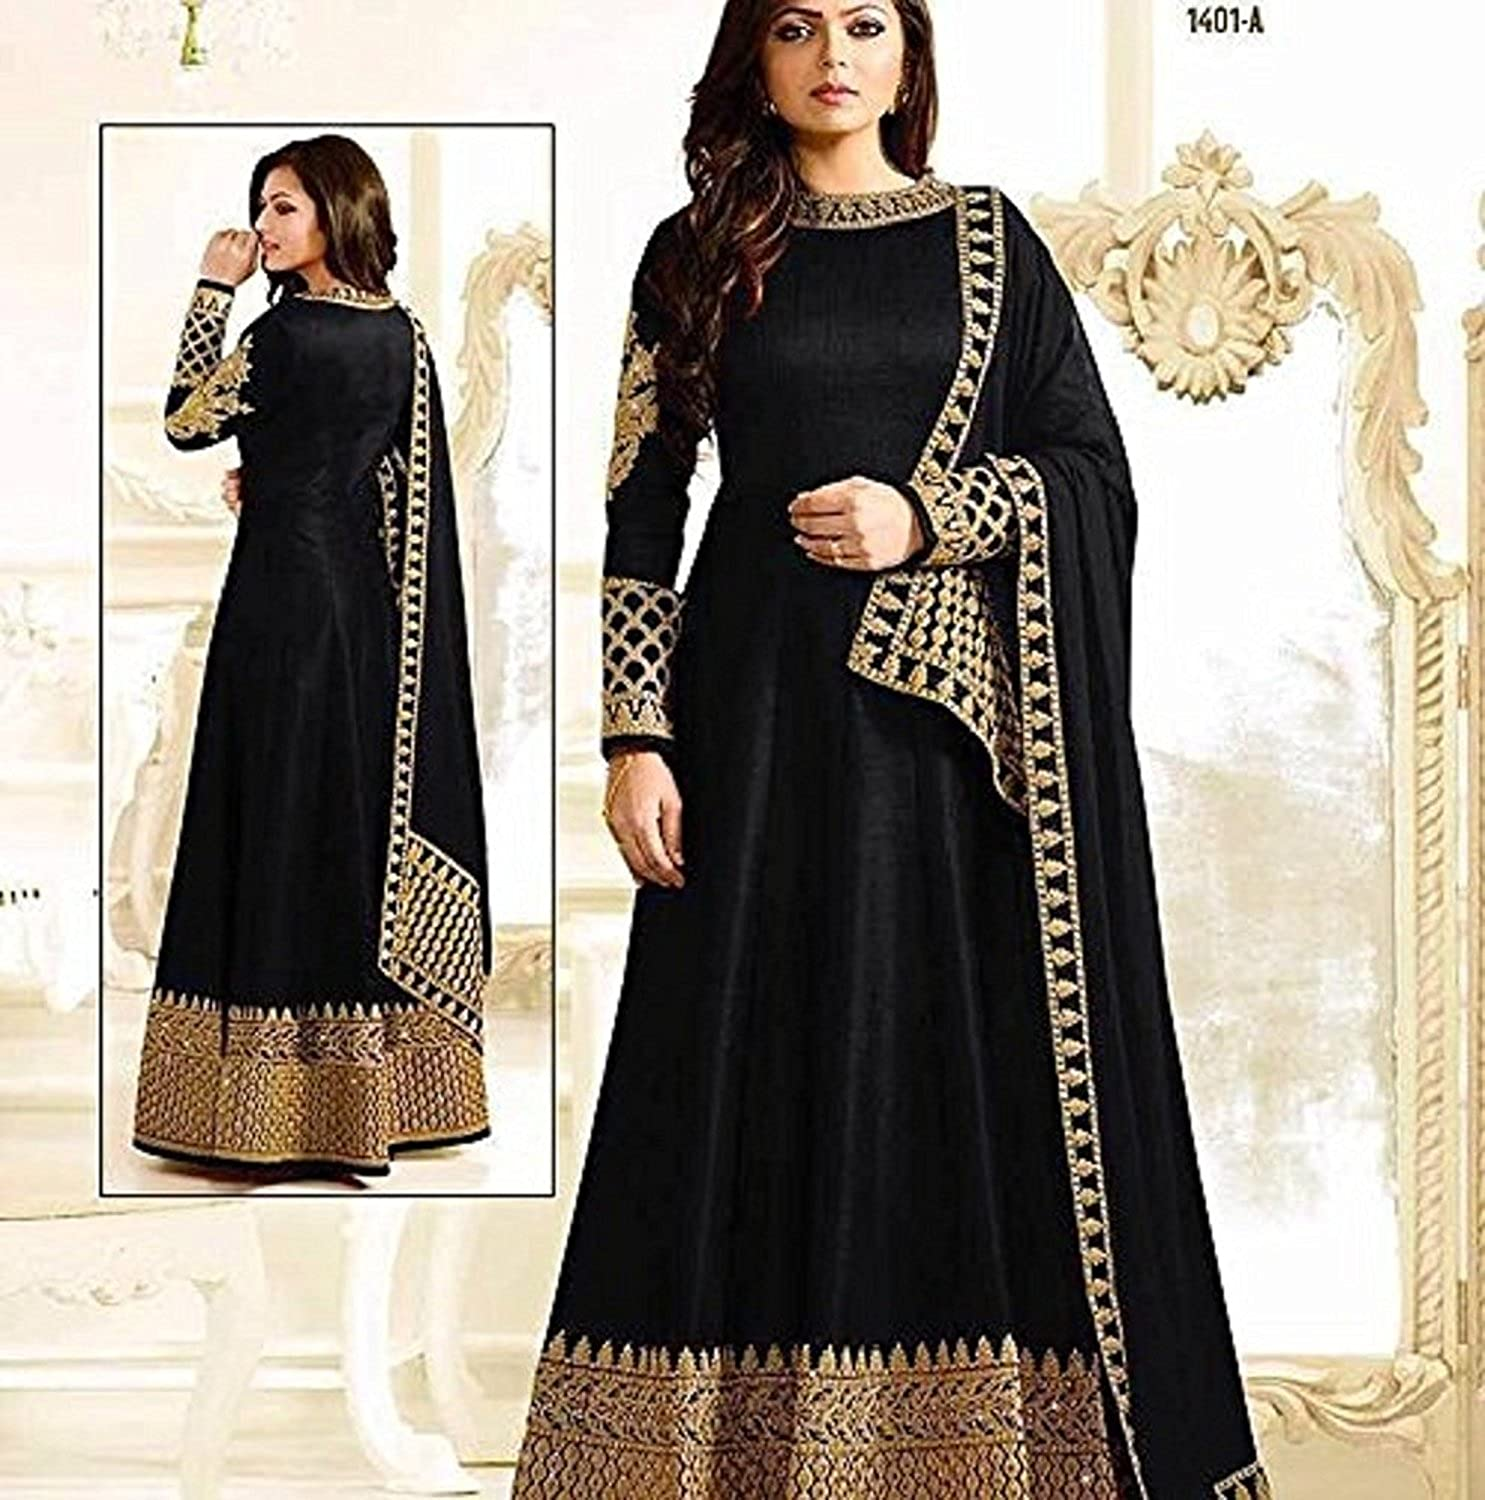 1a3124f1ec Delisa Readymade Partywear Indian/Pakistani Salwar Anarkali Suit SF-122F4F02  (SMALL-38, Black): Amazon.co.uk: Clothing